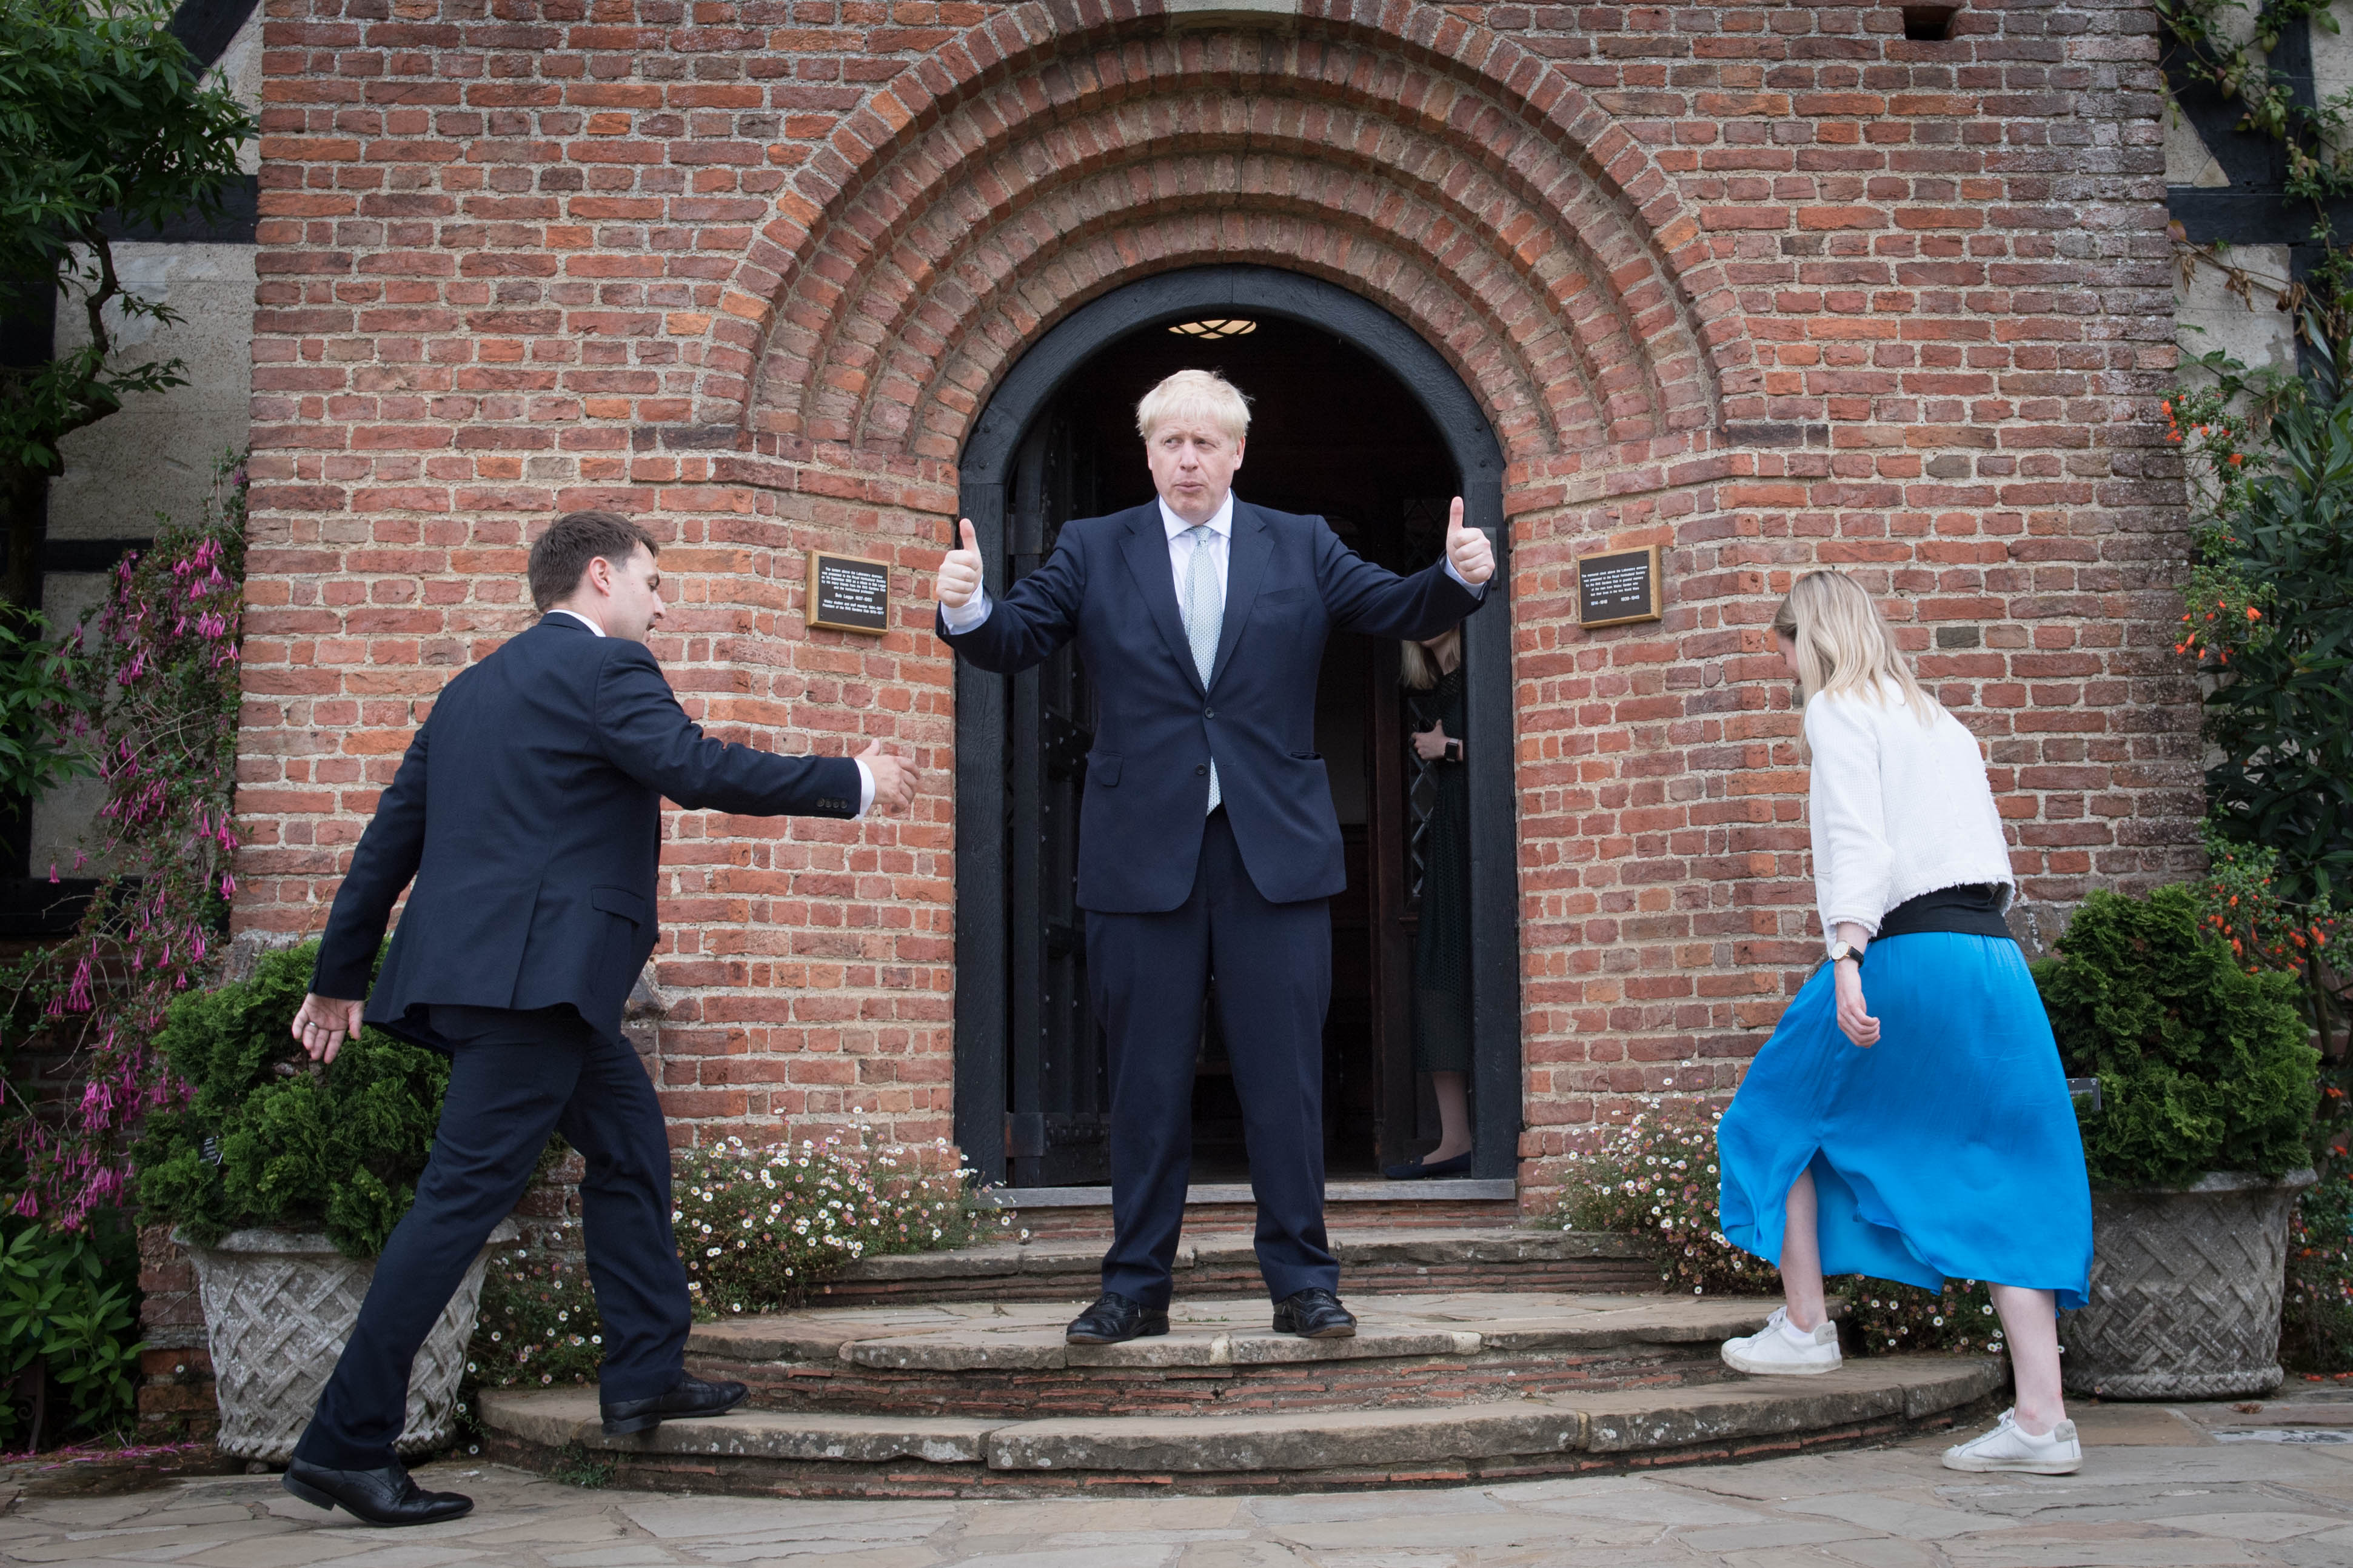 Conservative party leadership candidate Boris Johnson (centre) gestures to visitors as his staff members walk up the steps, during a tour of the RHS (Royal Horticultural Society) garden at Wisley, in Surrey.